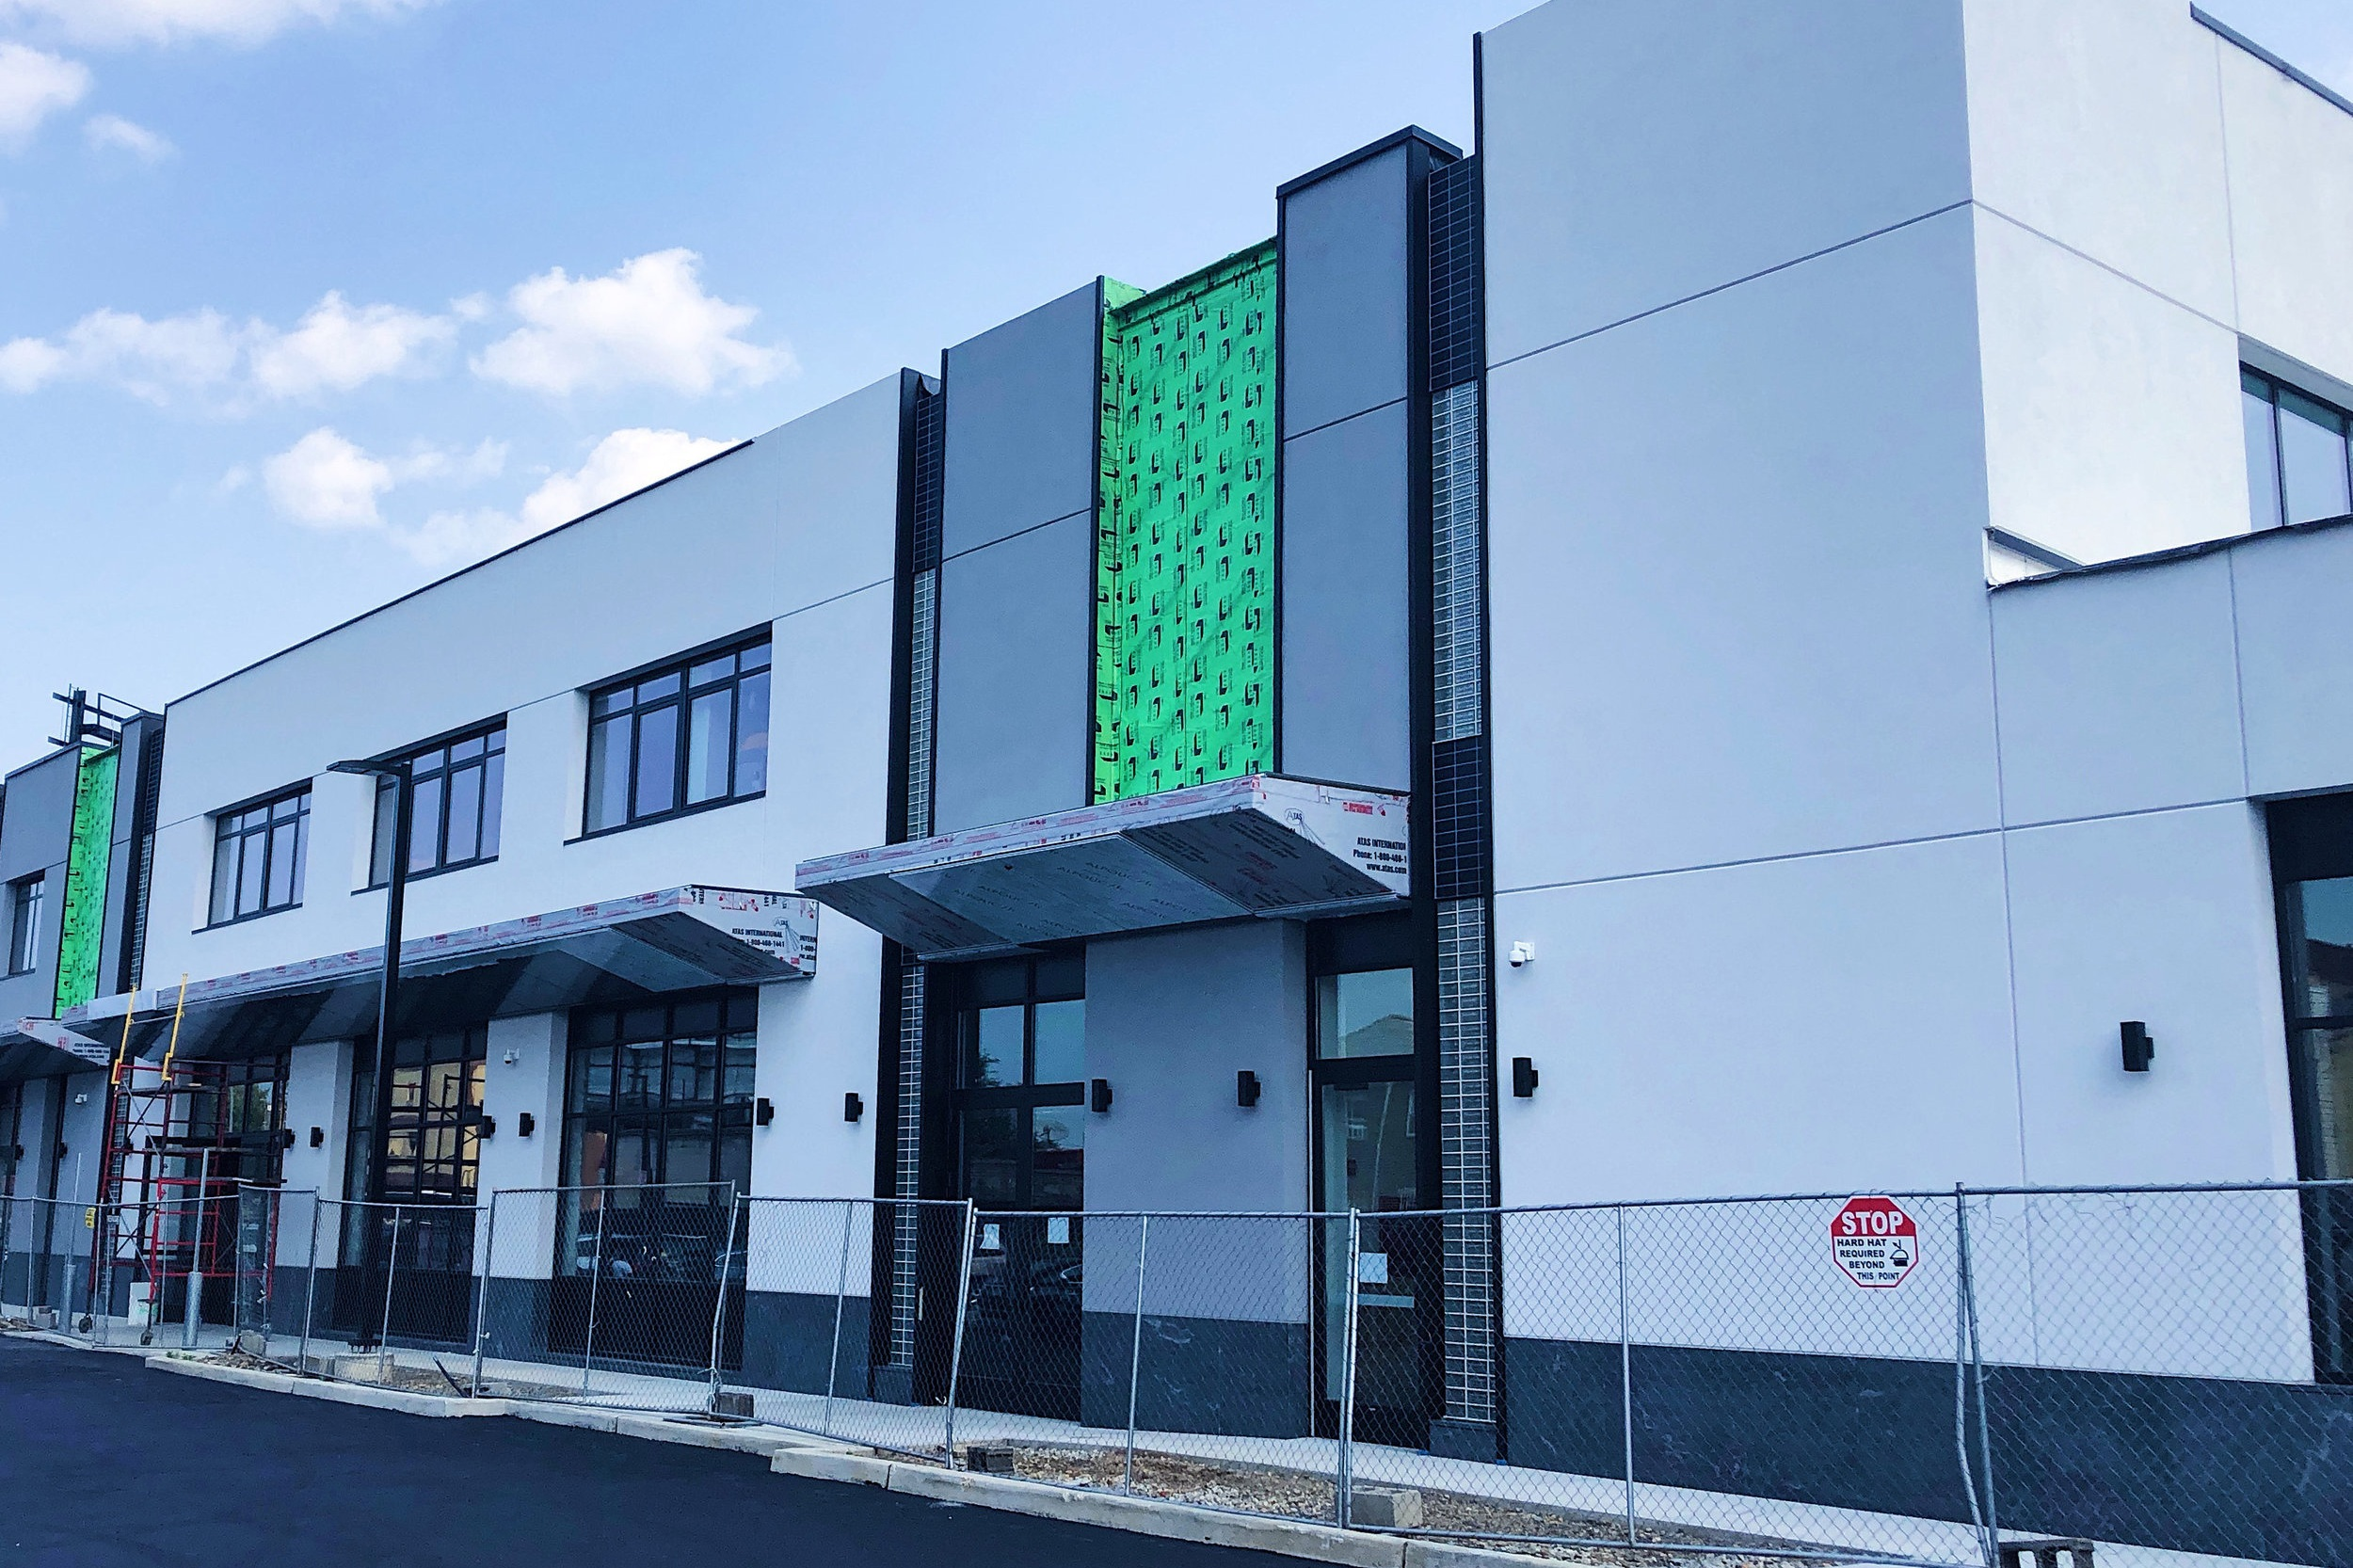 Exterior Renovation in Queens Nears Completion - August 23, 2018The transformation of this former warehouse in Jamaica, Queens is nearing completion. The new, energy-saving facade system incorporates EIFS, architectural glass block, a porcelain tile-clad rainscreen, and metal panel canopies designed to minimize thermal bridging. The building will serve the local community as a retail and commercial office complex.